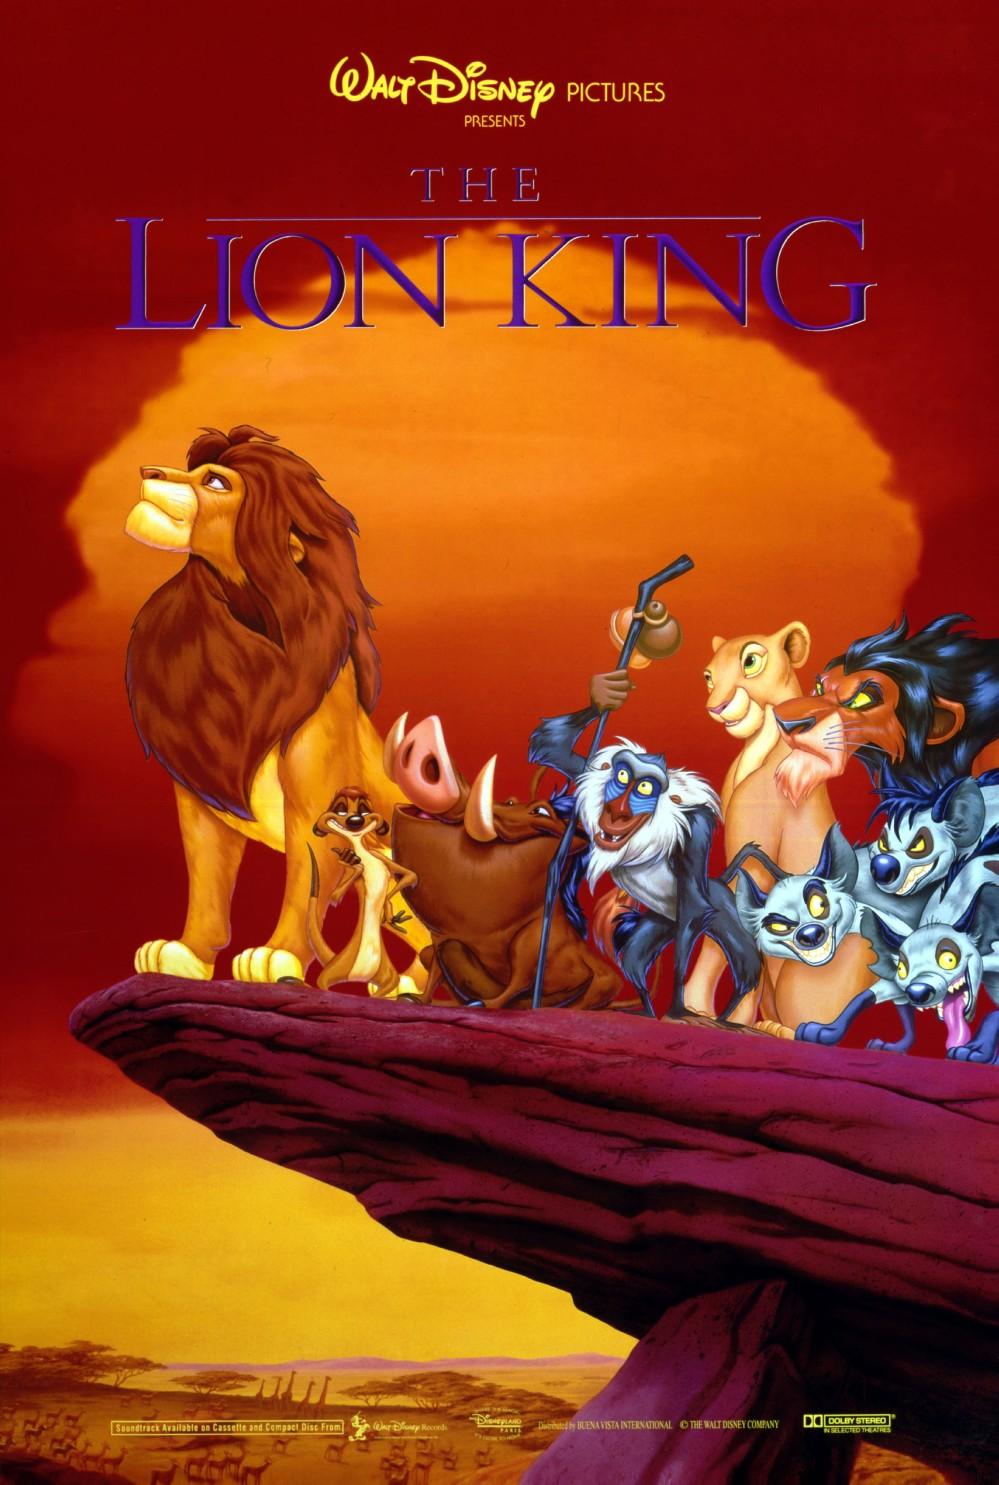 The-Lion-King-Movie-Poster-the-lion-king-34827807-3365-5000